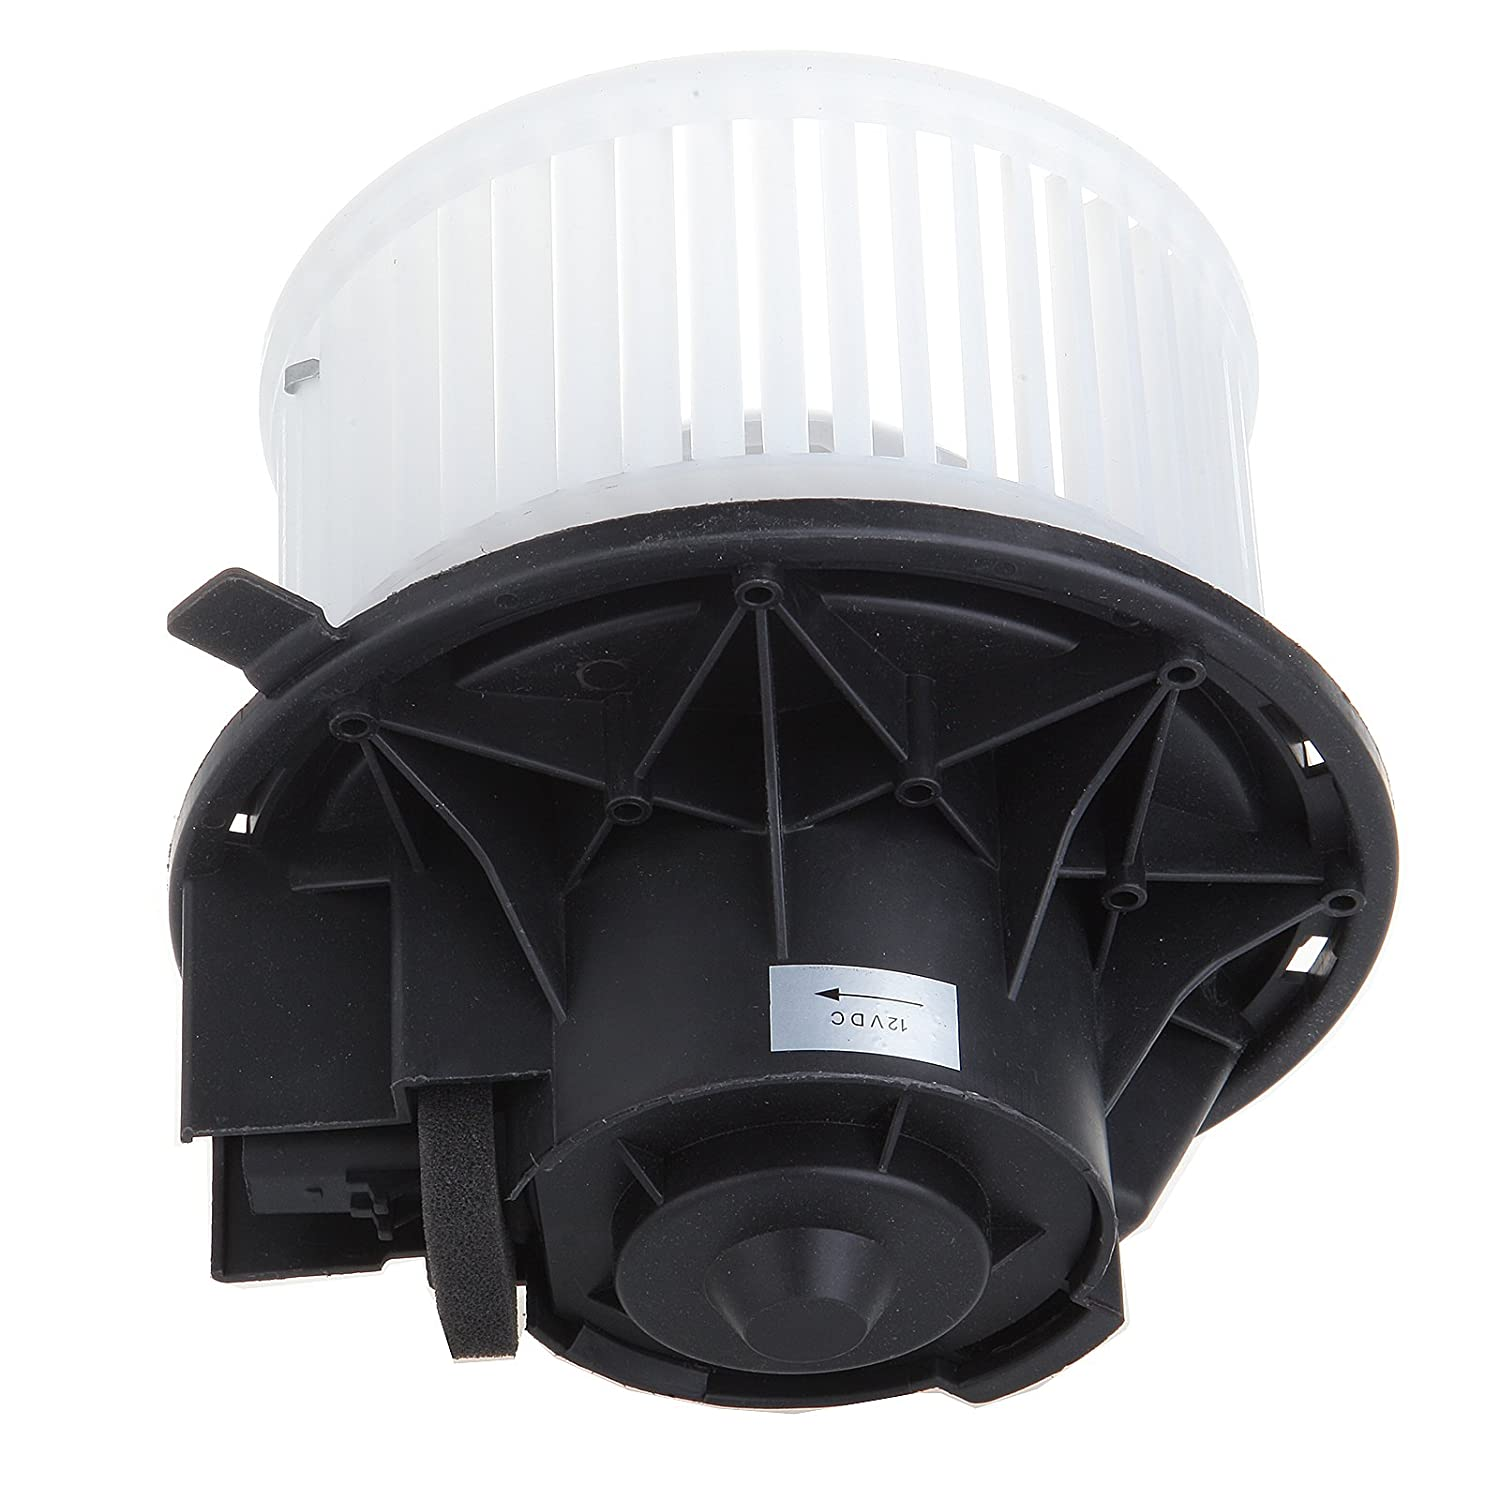 OCPTY A//C Heater Blower Motor ABS w//Fan Cage Air Conditioning HVAC Replacement fit for 2002-2007 Jeep Liberty//2002-2006 Jeep TJ//2002-2006 Jeep Wrangler